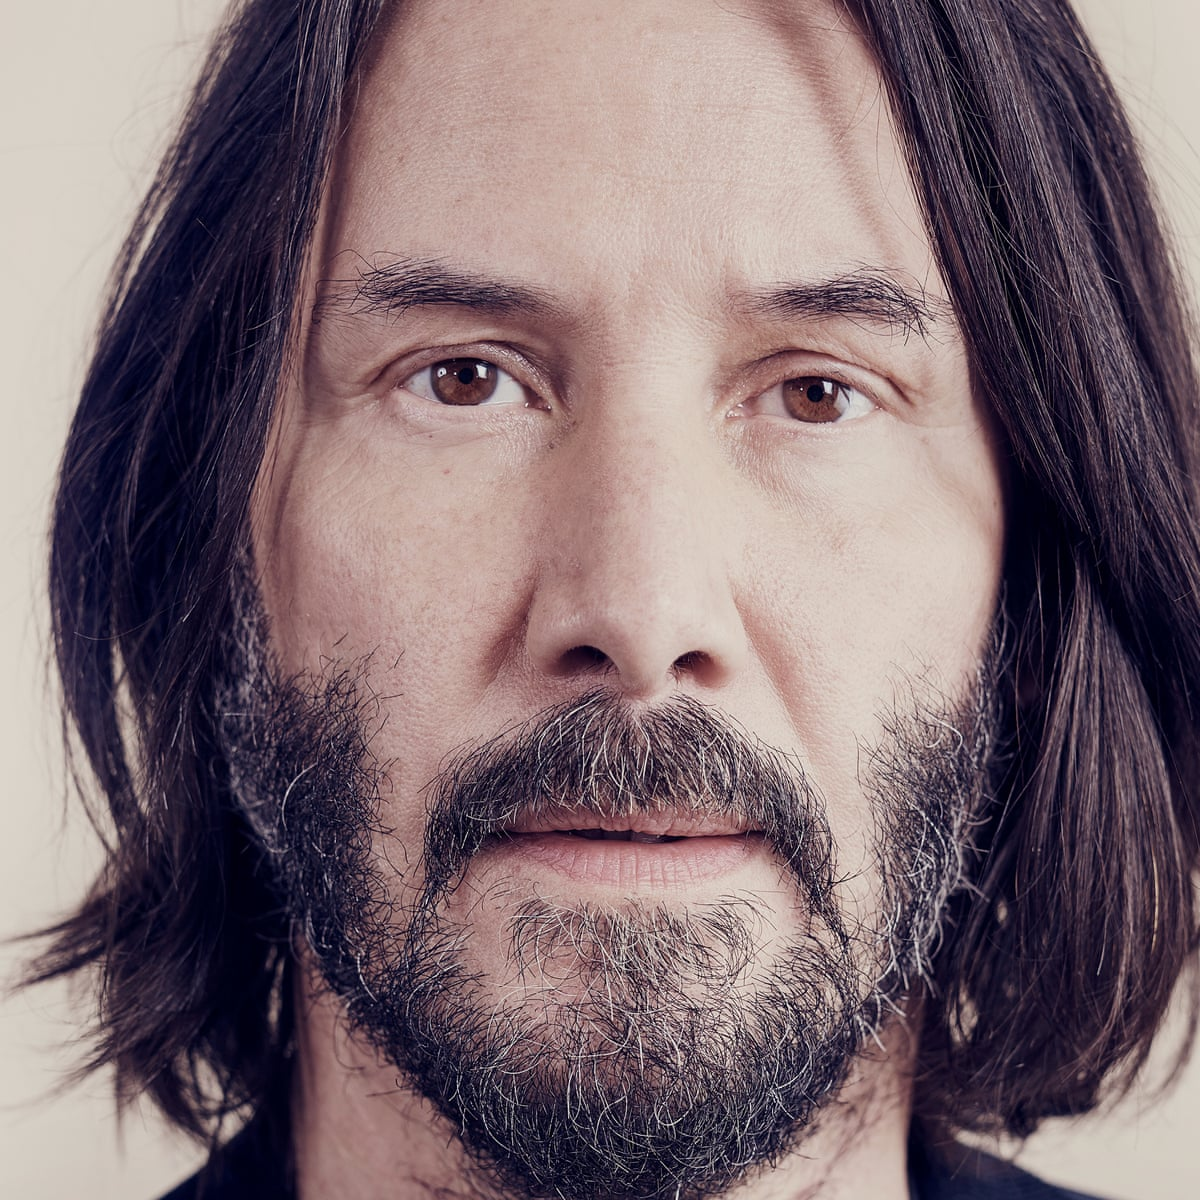 Keanu Reeves Grief And Loss Those Things Don T Ever Go Away Keanu Reeves The Guardian